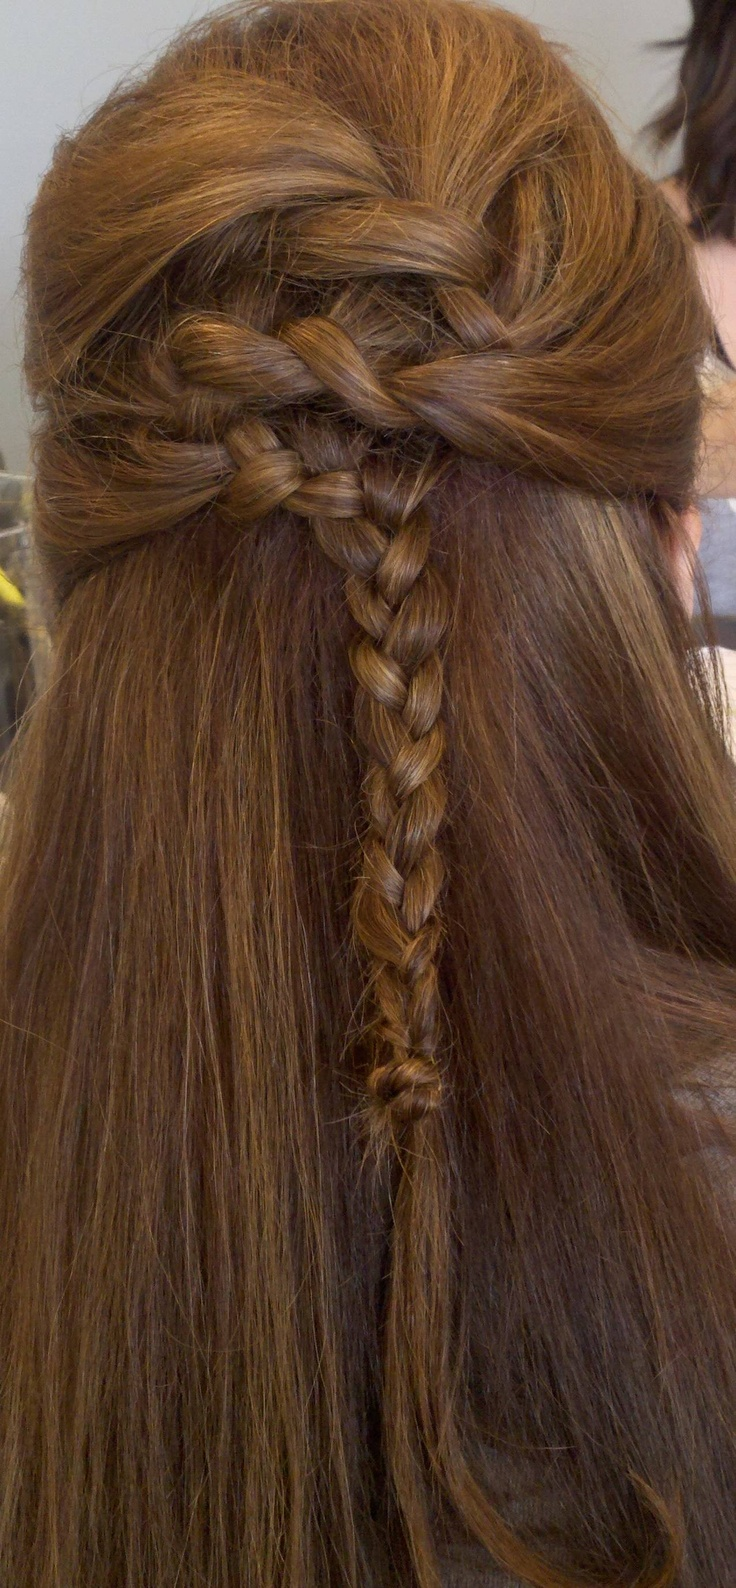 ancient irish hairstyles - hairdoes